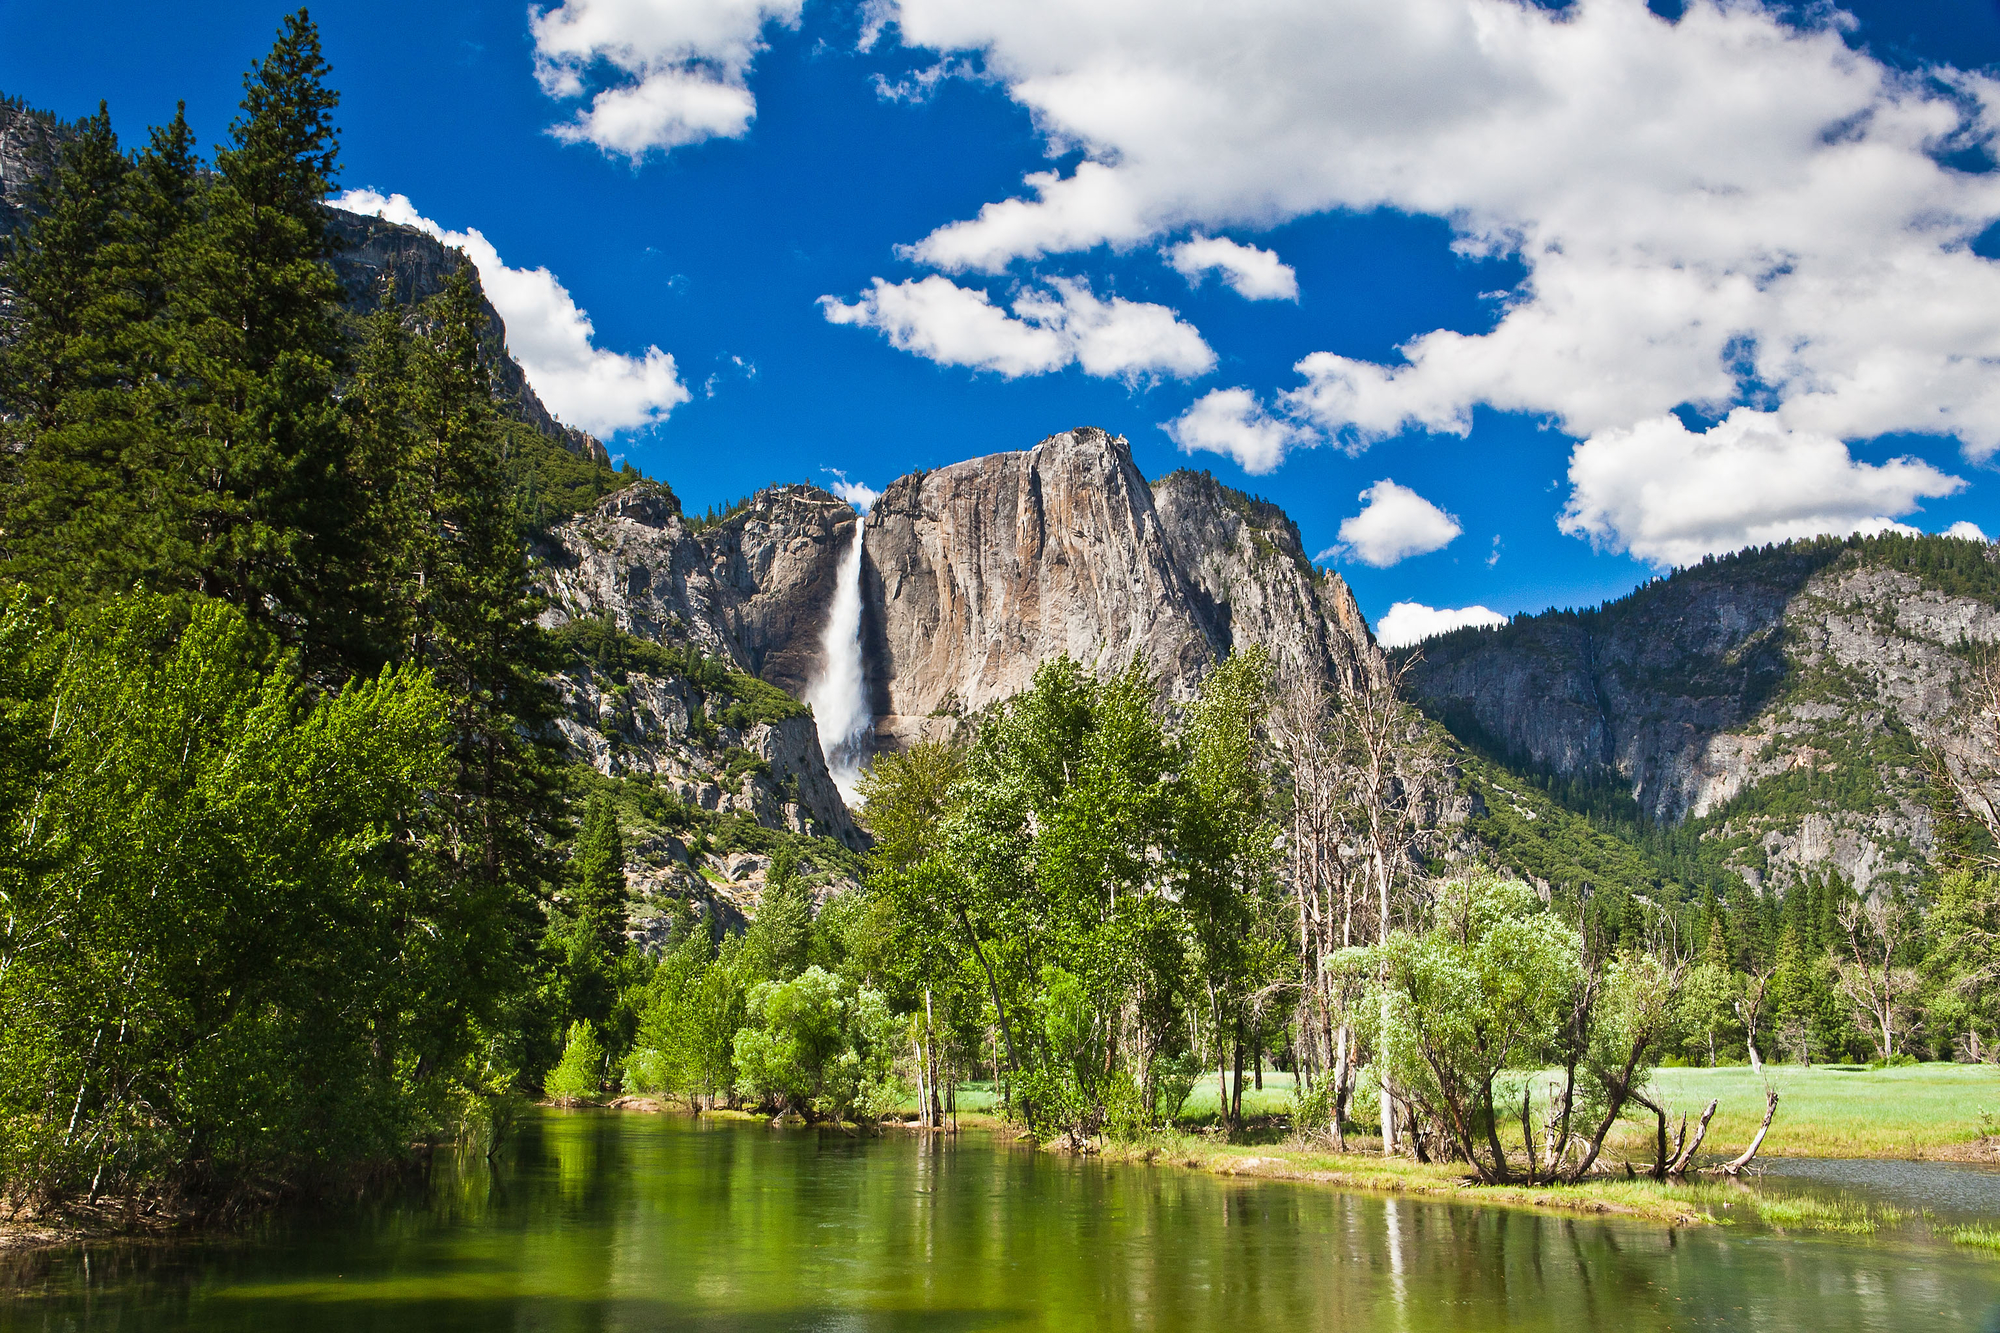 Top 5 National Parks for a Classic Road Trip Out West